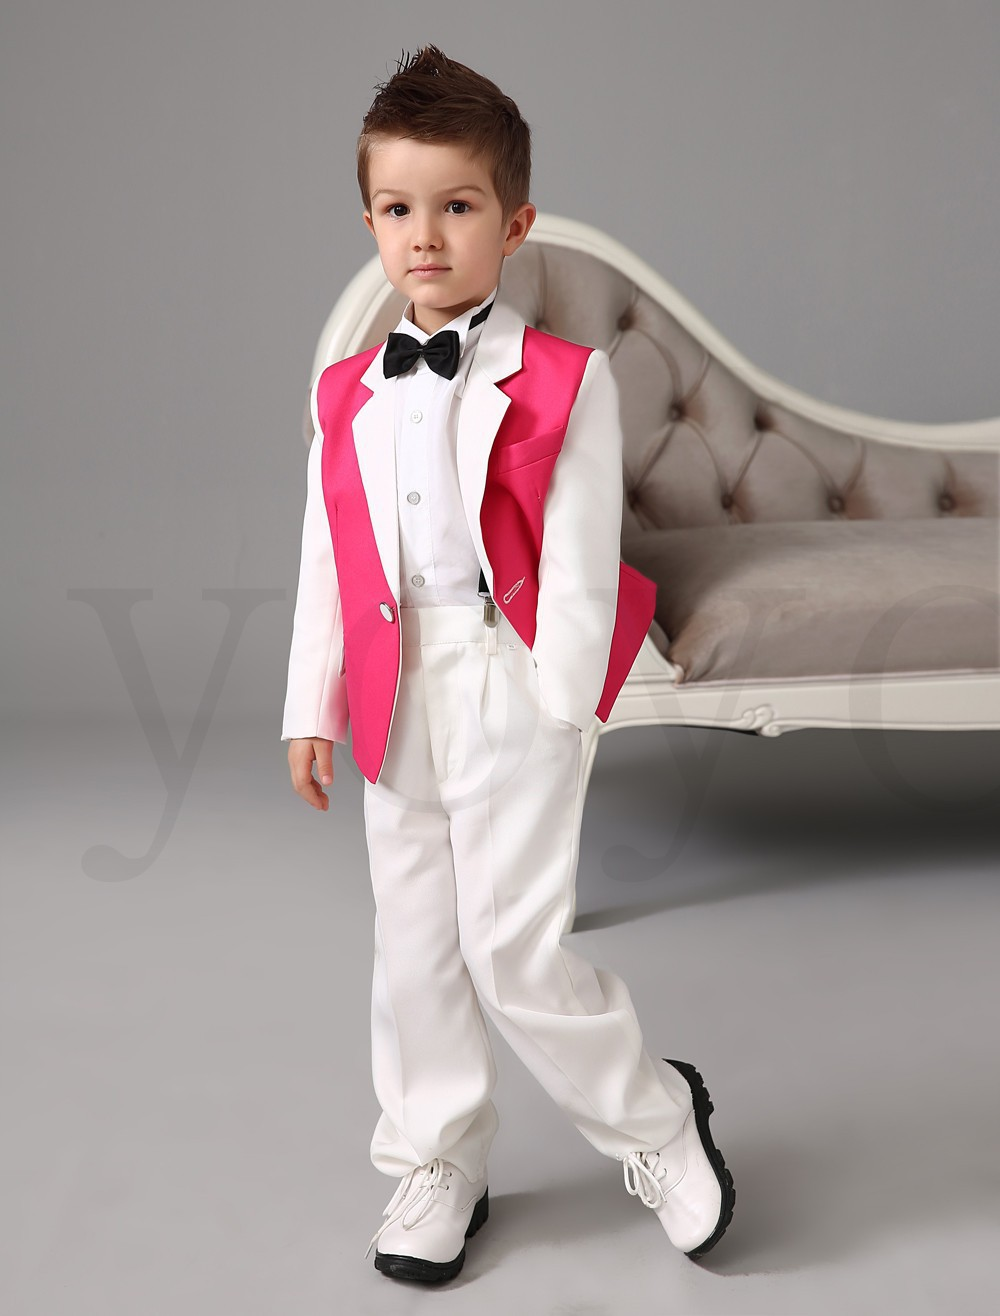 2017 White Pink Boys Tuxedos Wedding Attire Baby Boy Dress Clothes Coat Pants Tie Bm 0039 Suits Blazers In From Mother Kids On